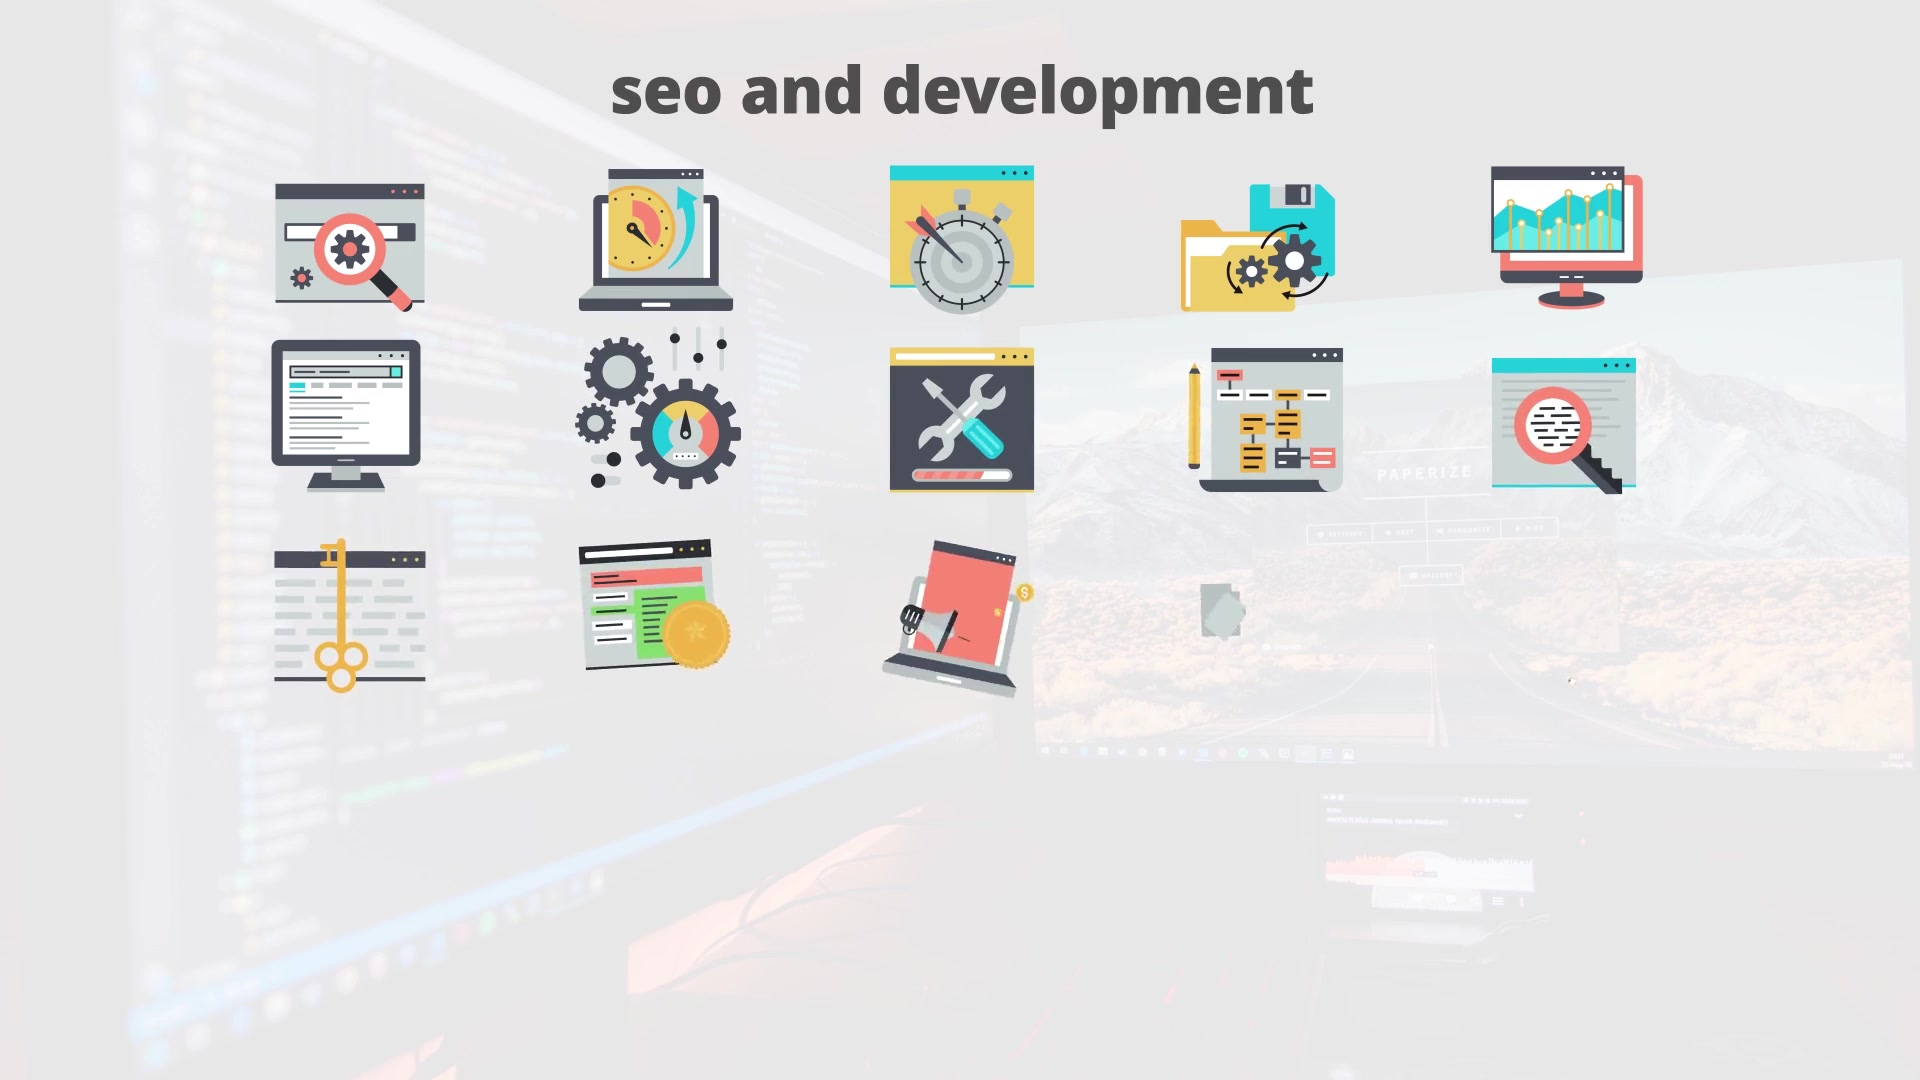 SEO And Development Flat Animation Icons - Download Videohive 23465984